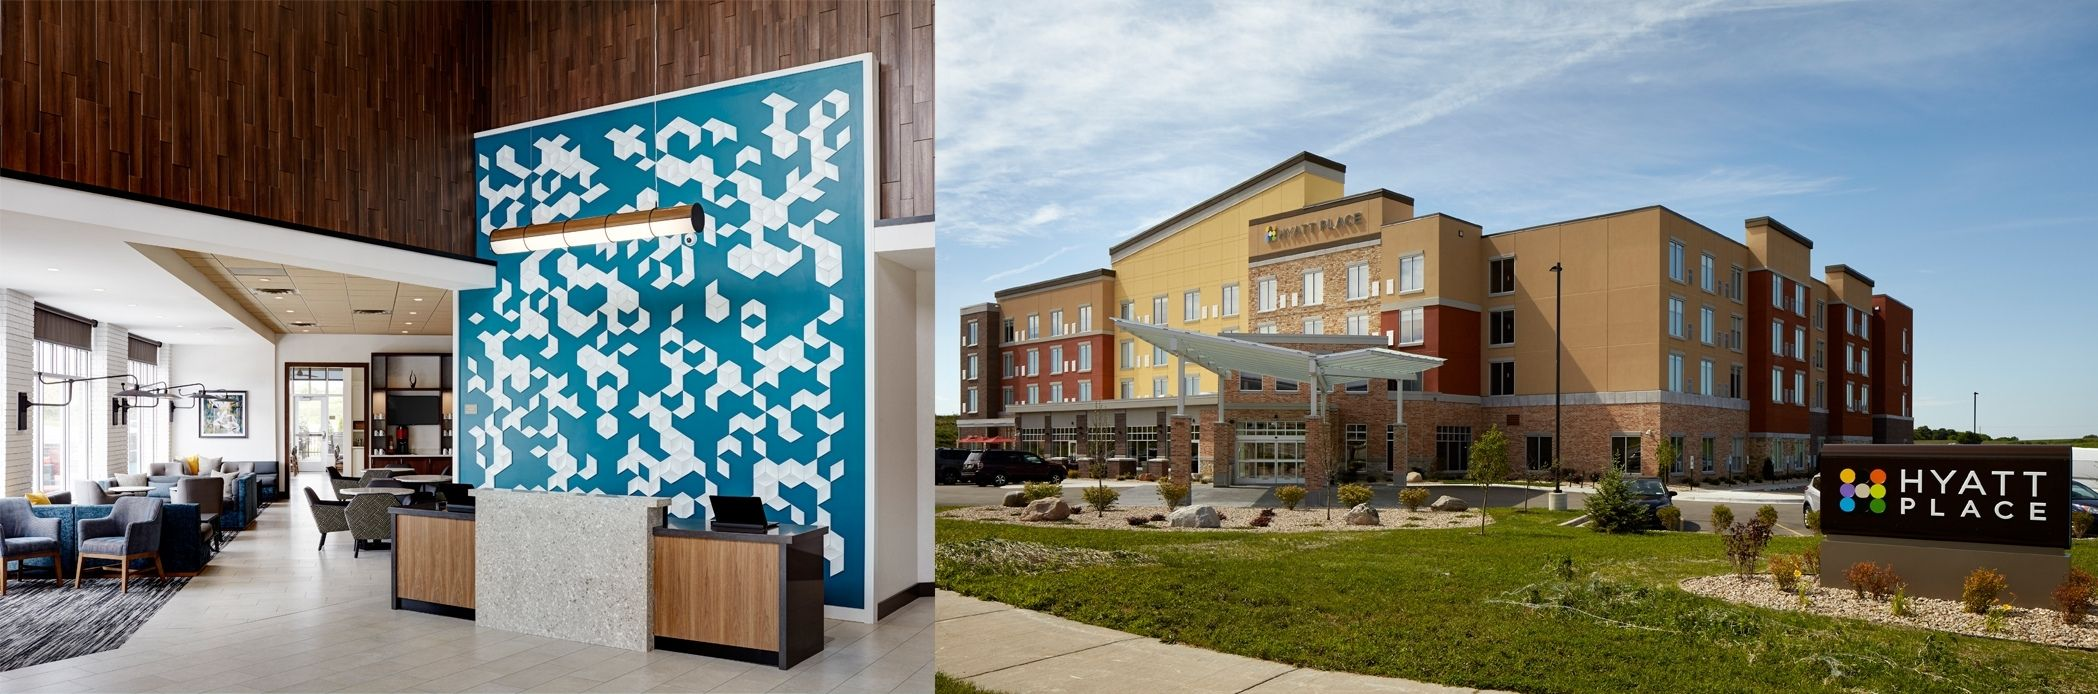 Two images Hyatt Place Hotel lobby and exterior